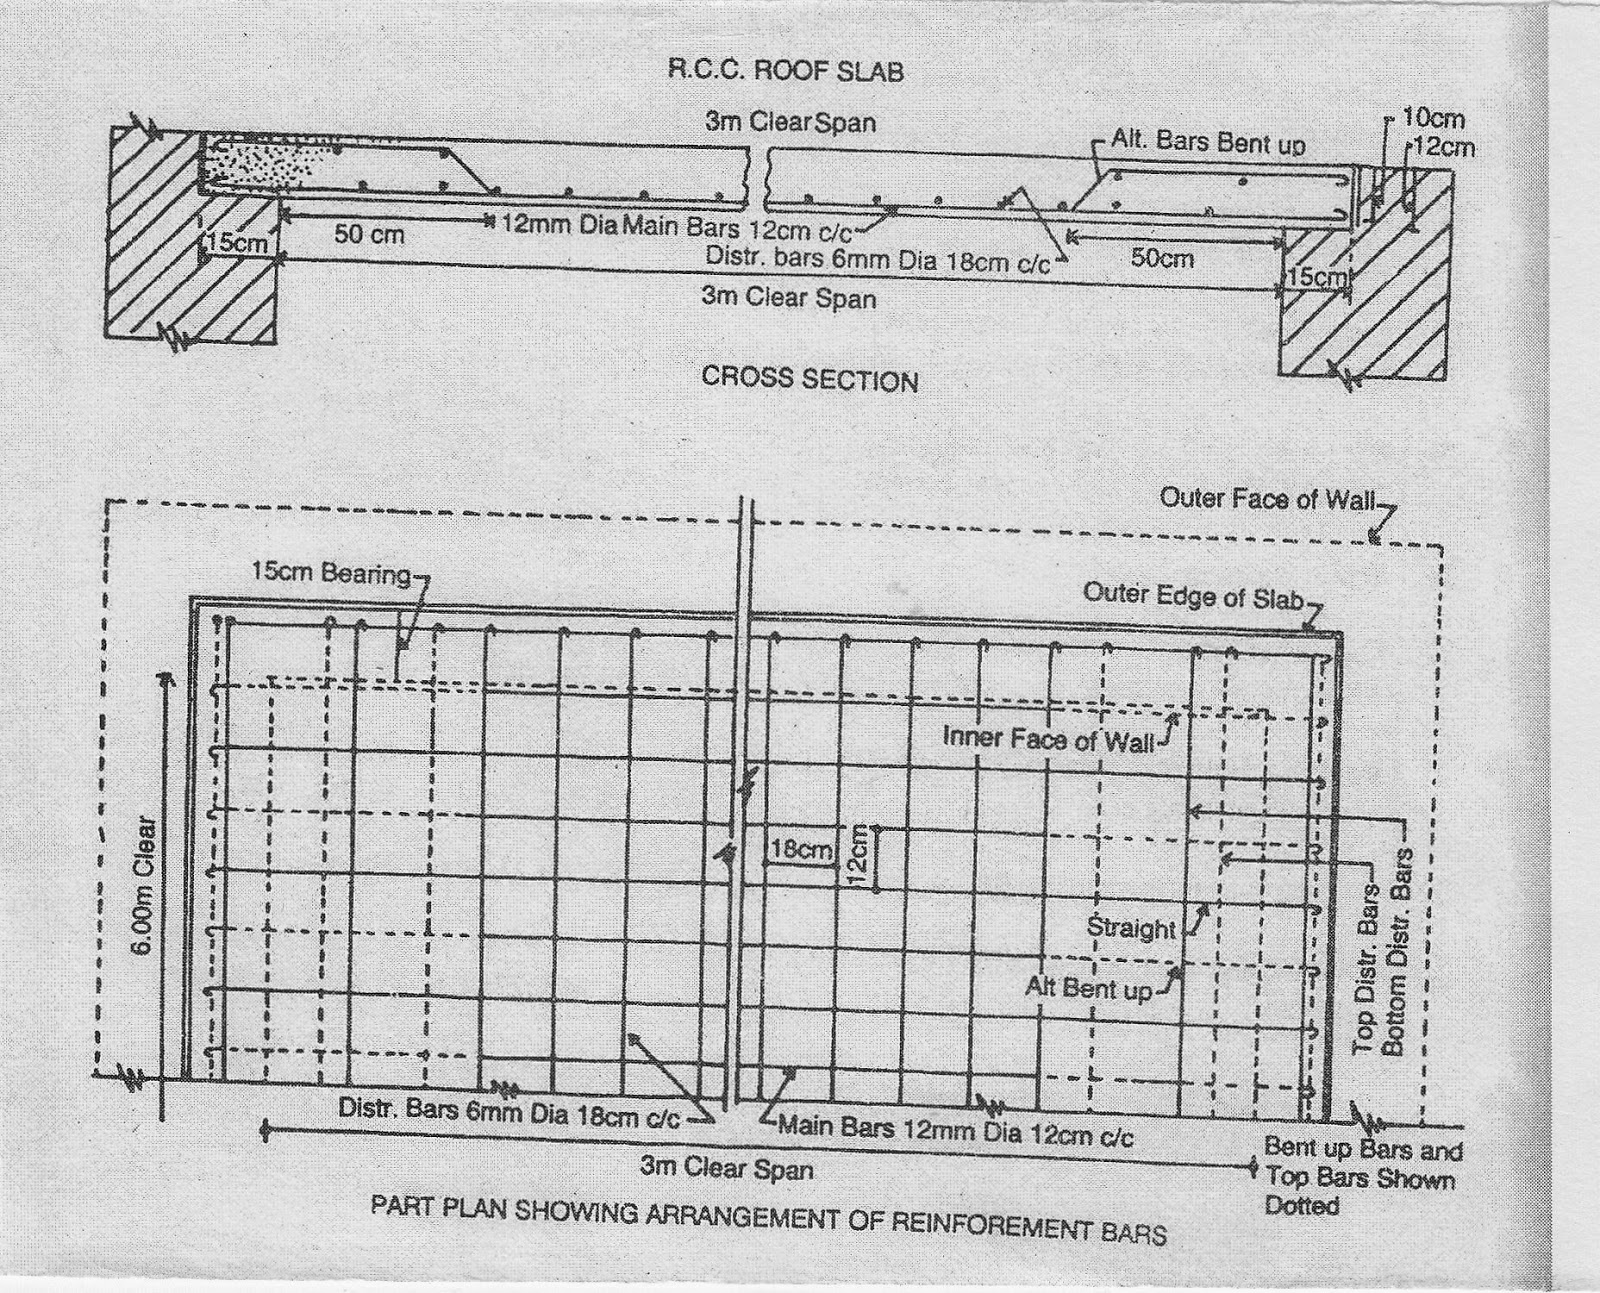 Rcc slab roof design example for Concrete slab plans